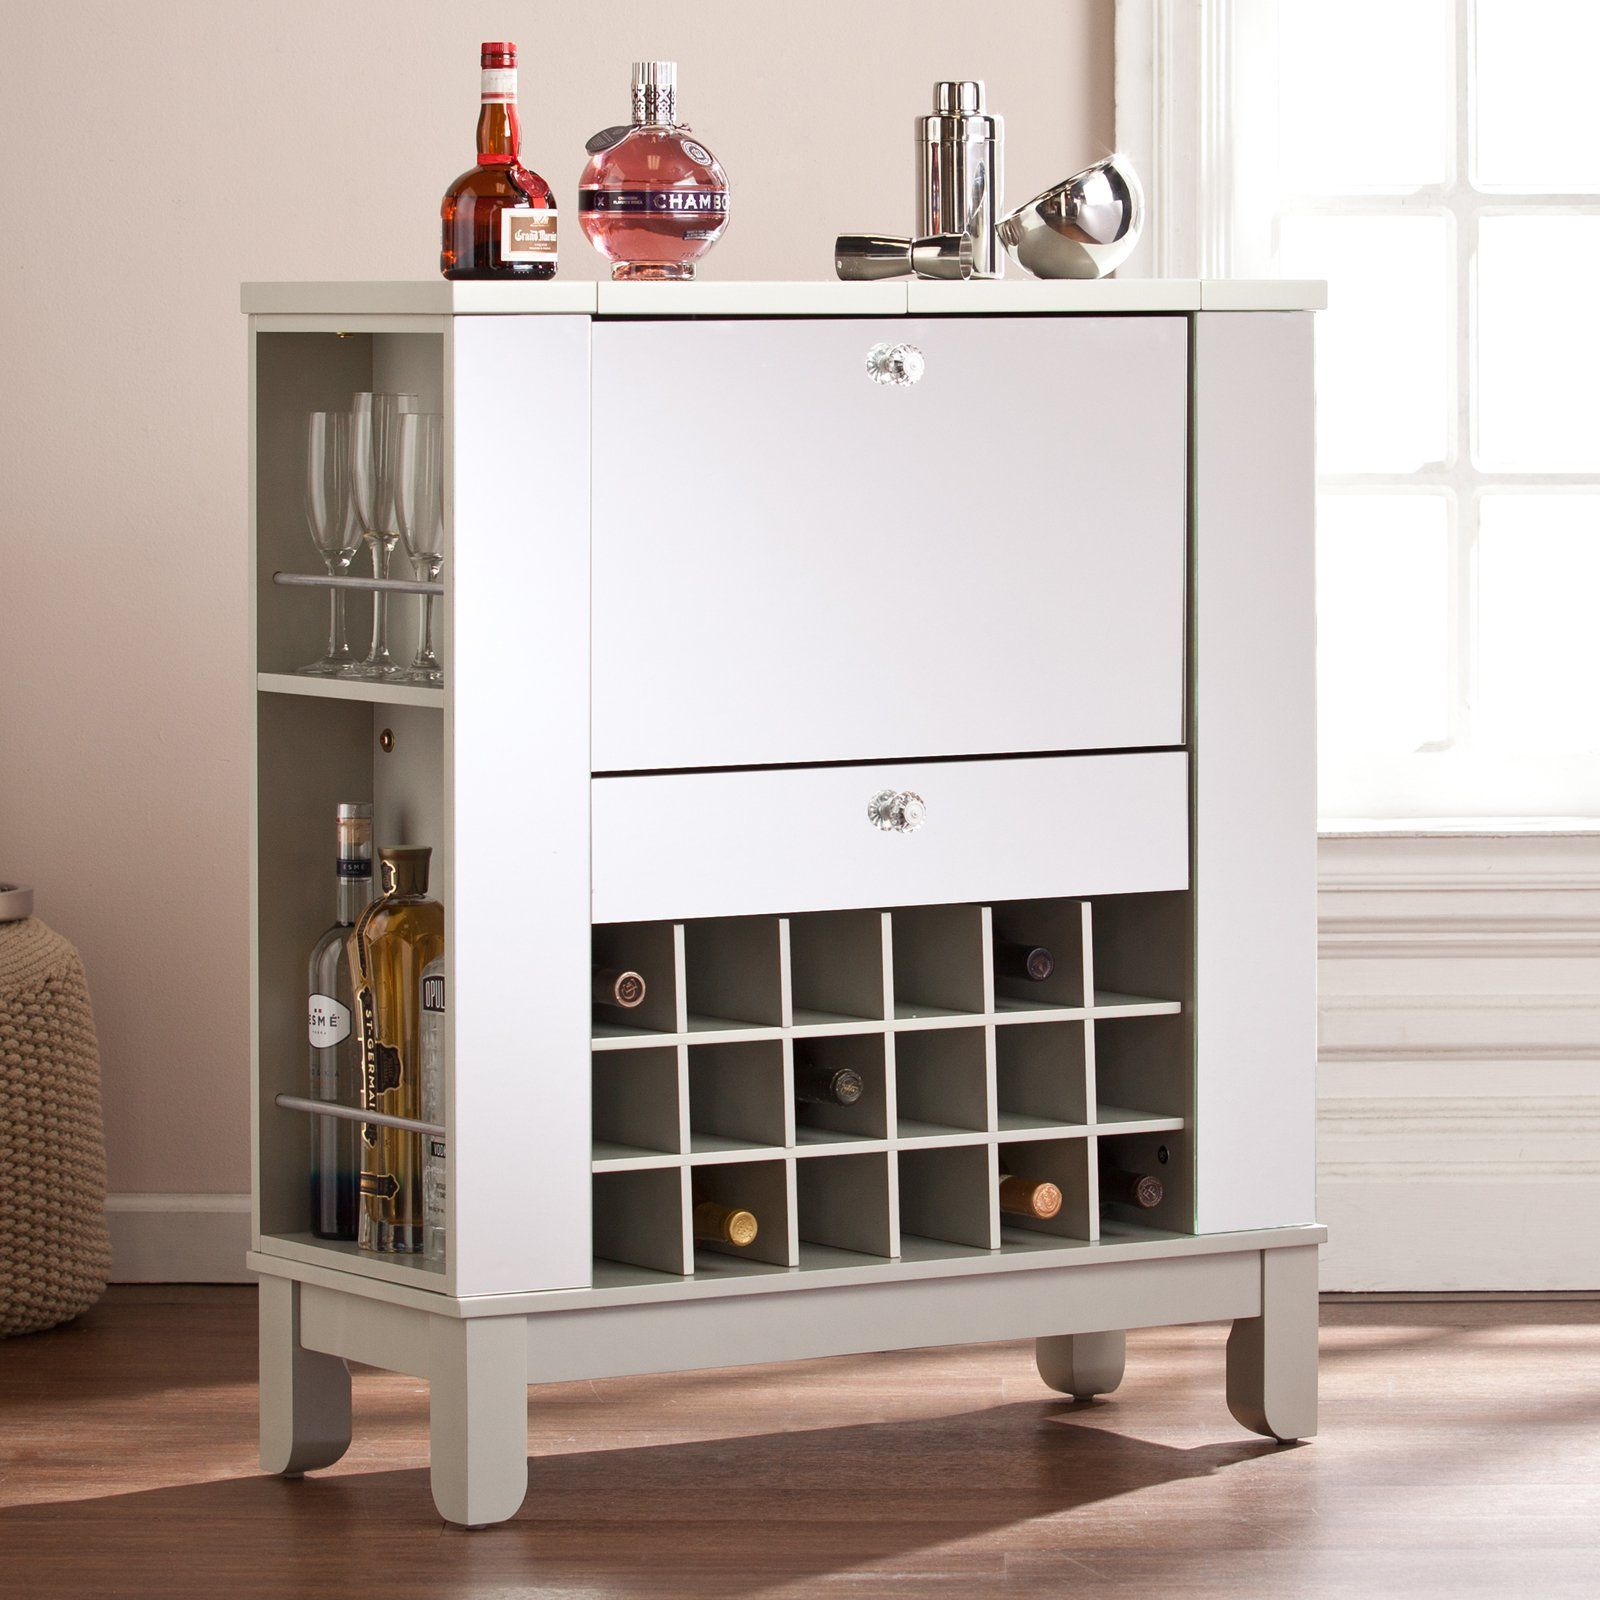 Southern Enterprises Mirage Mirrored Fold-Out Wine/Bar Cabinet ...